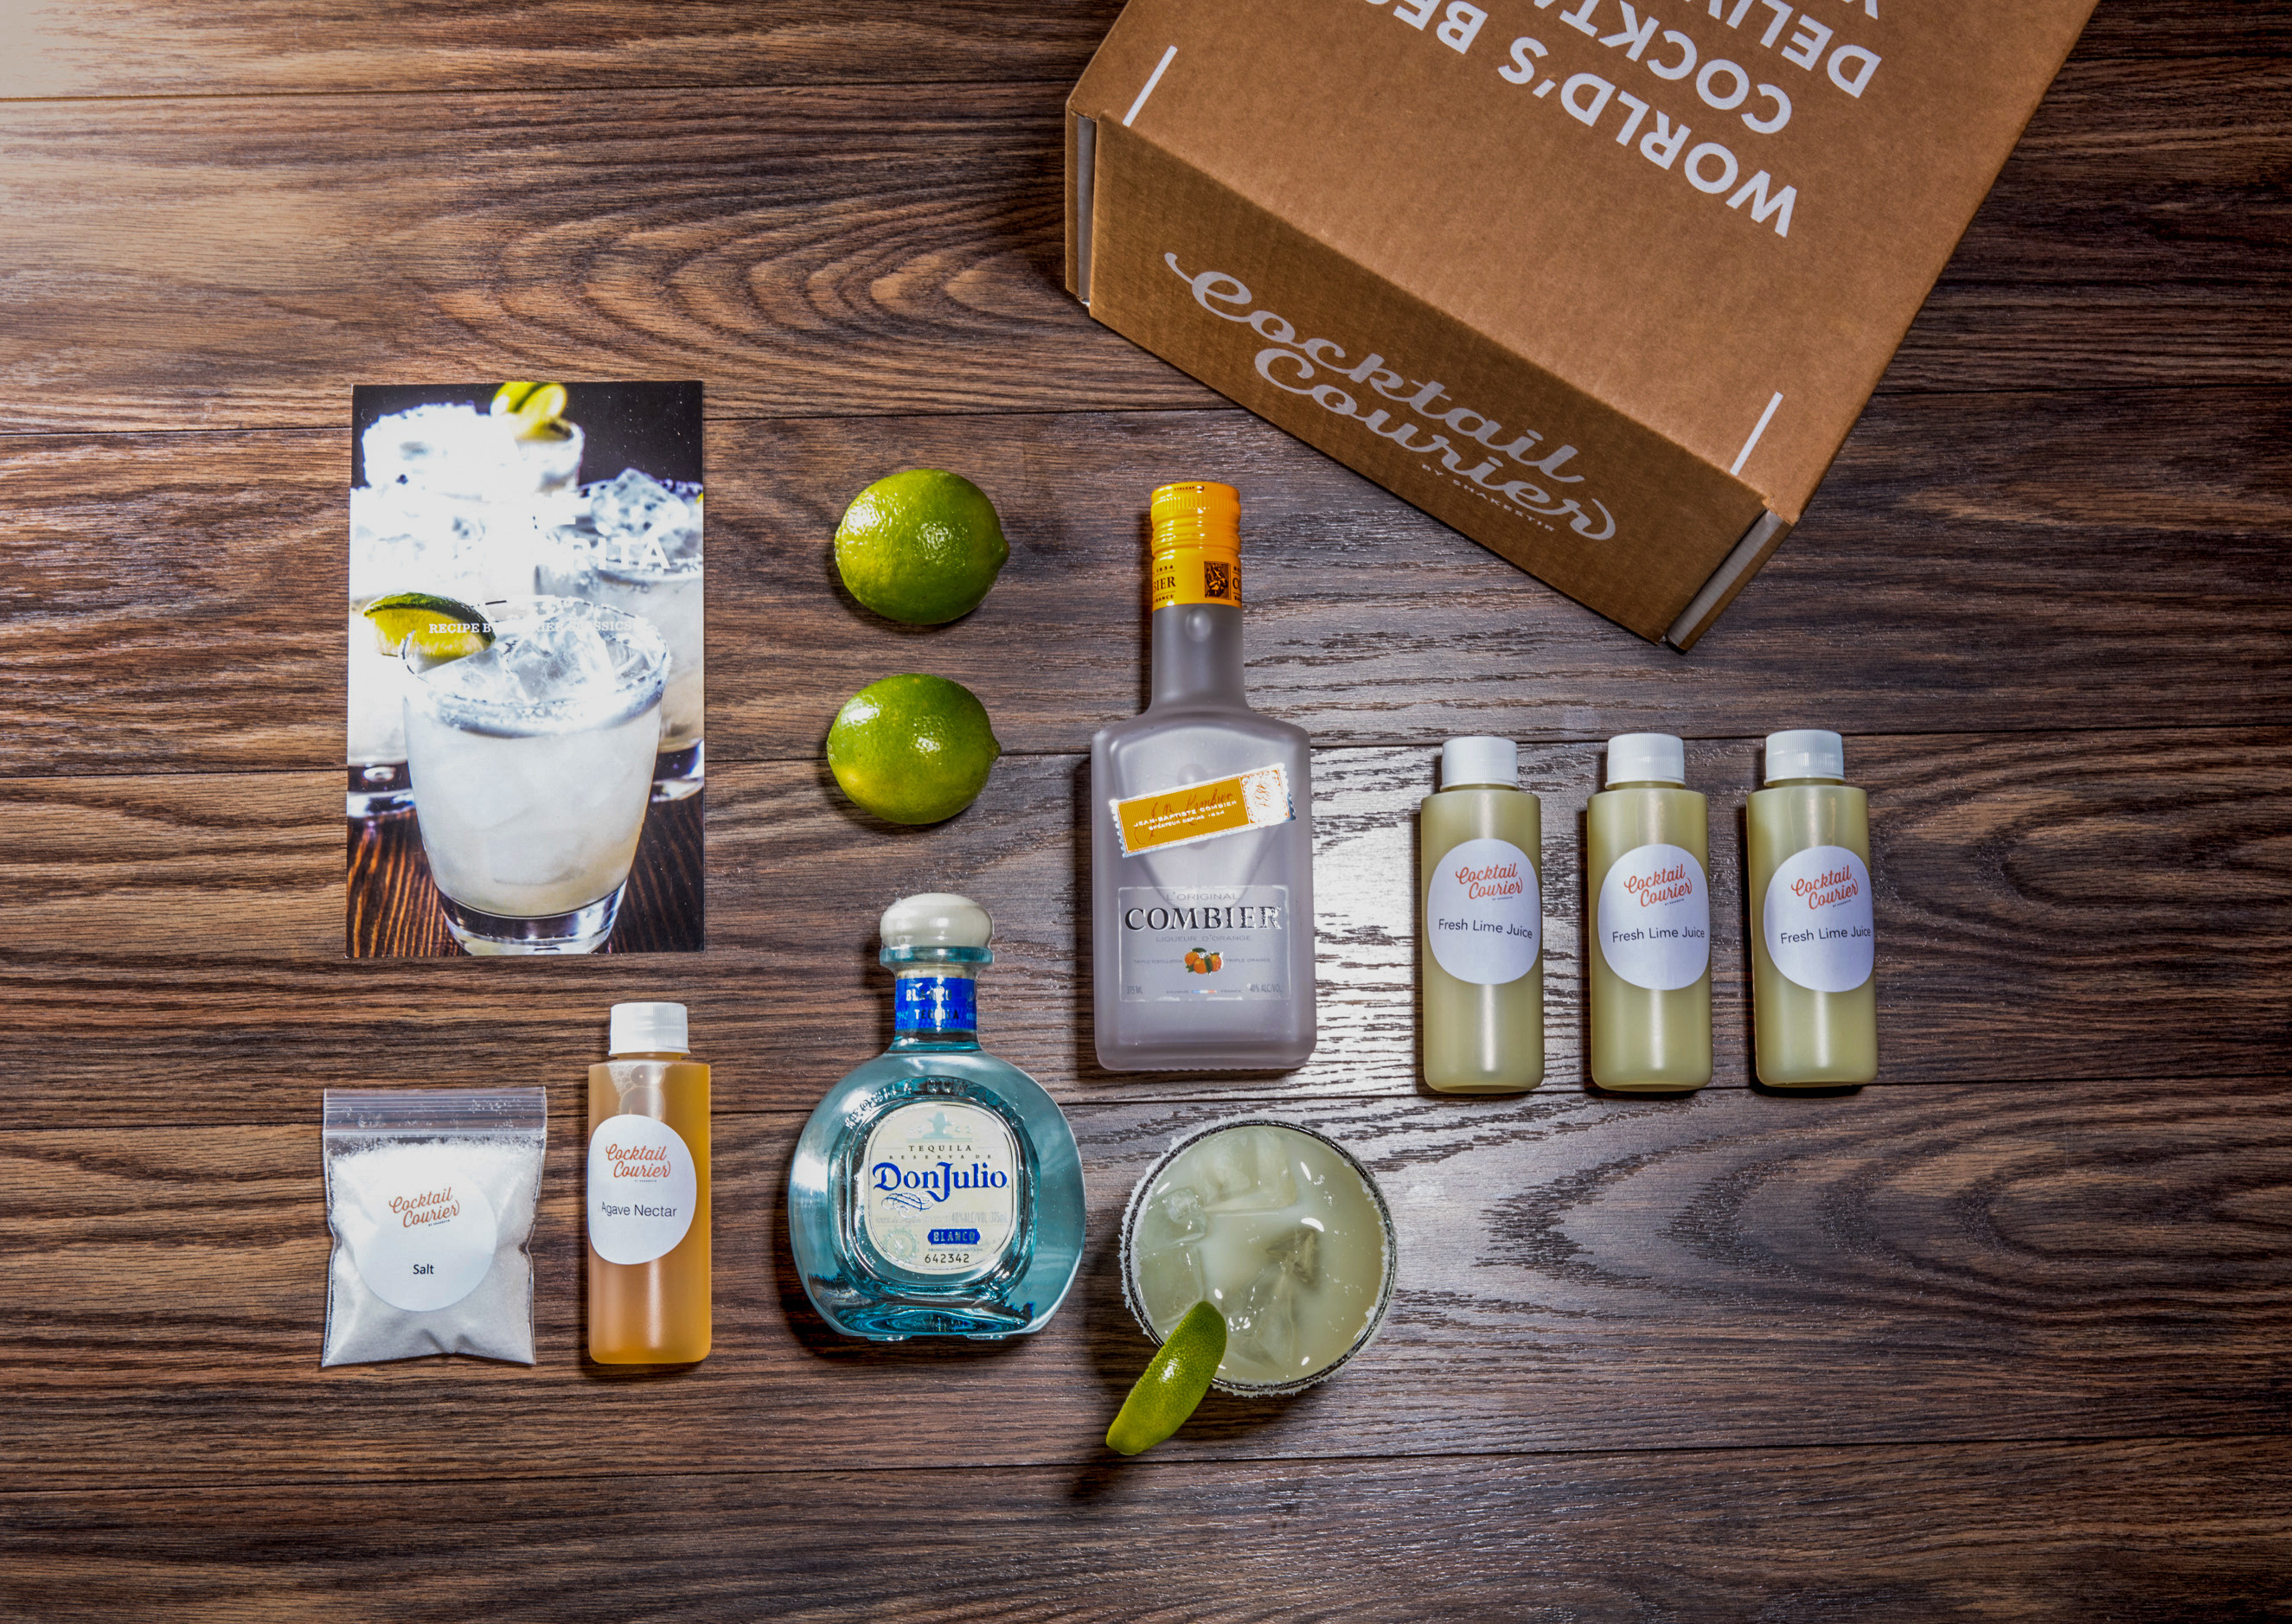 A margarita kit from Cocktail Courier.